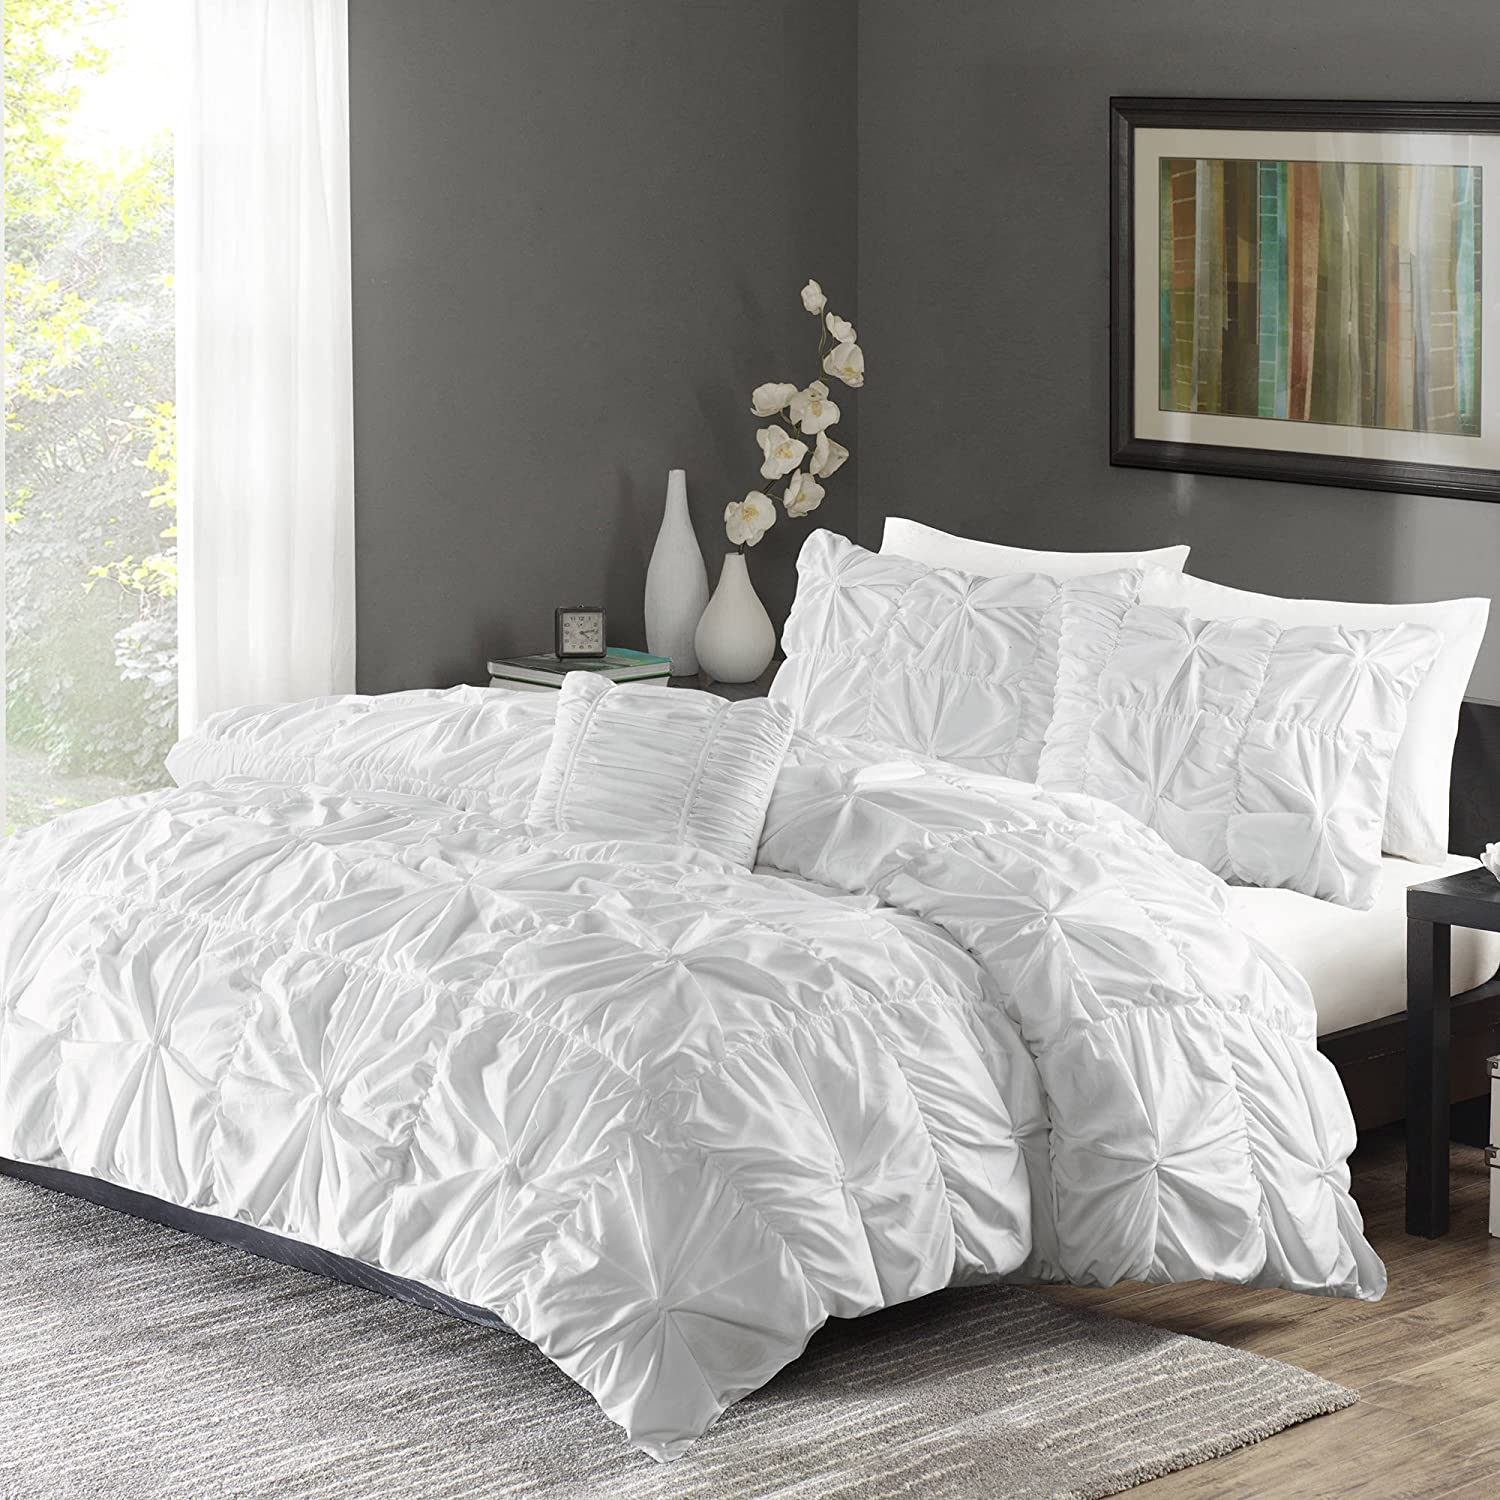 Better Homes and Gardens Pintuck Bedding Duvet Cover Set, Full/Queen, White